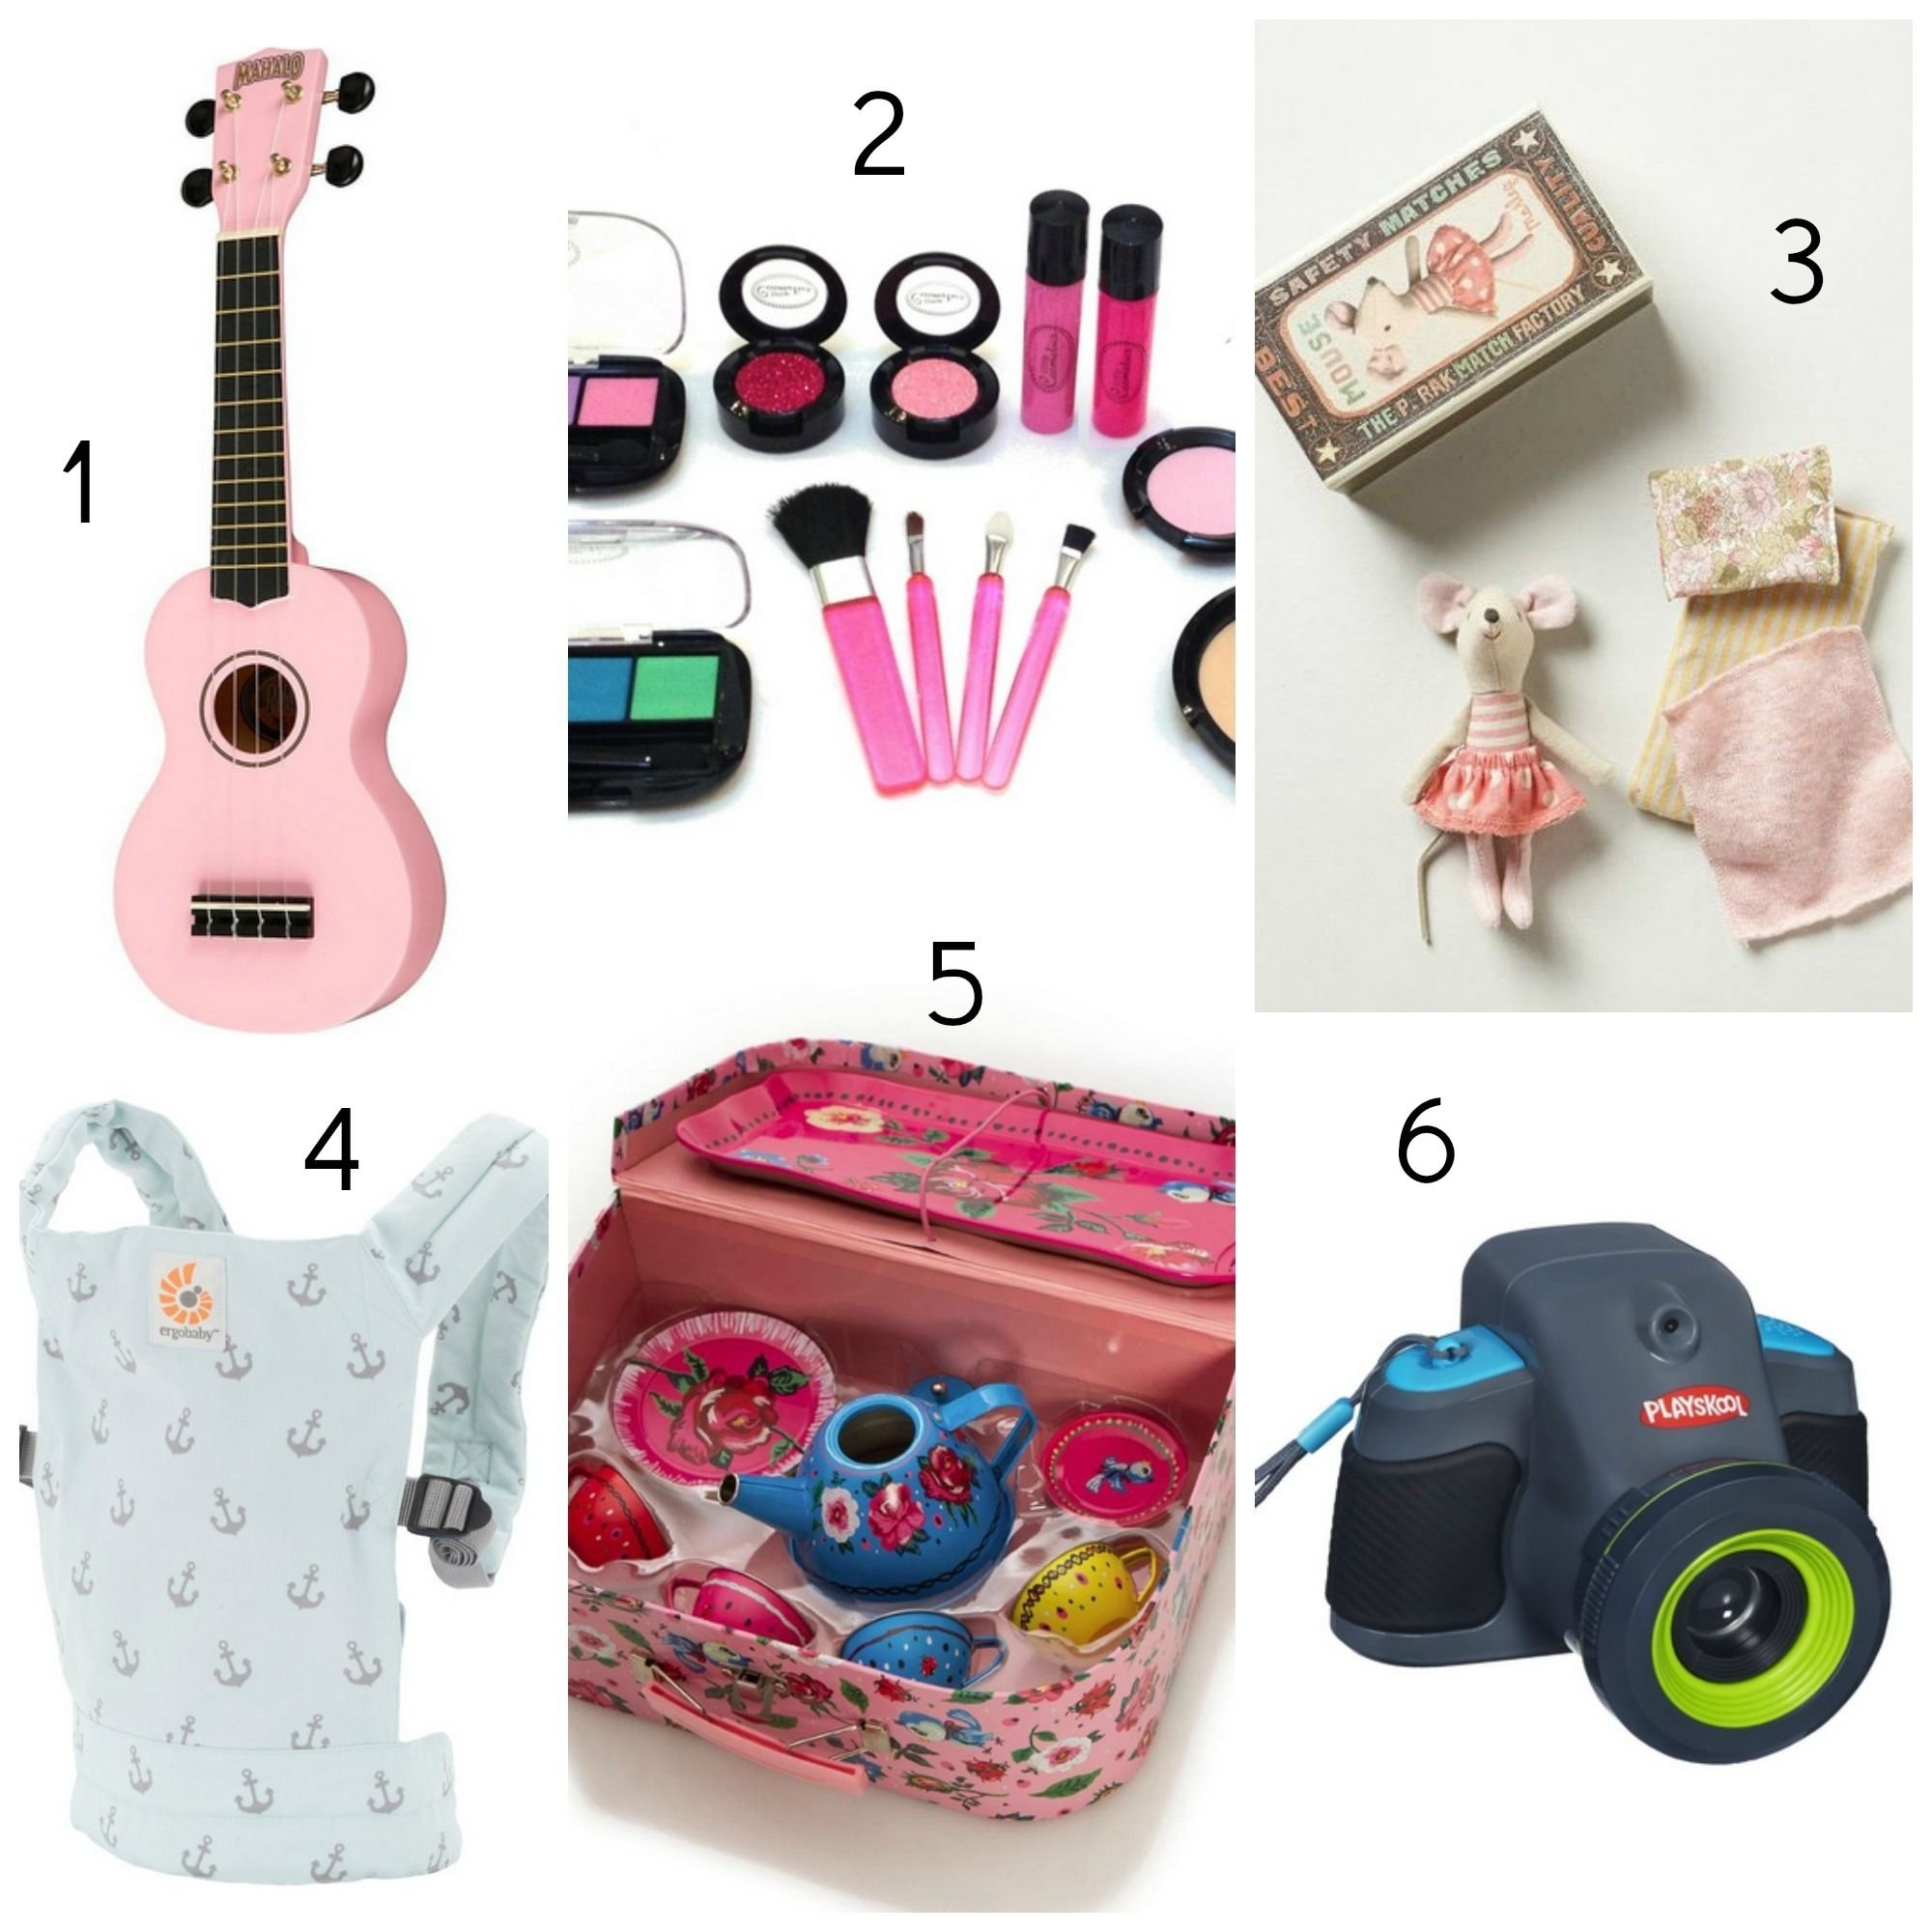 10 Trendy Gift Ideas 5 Year Old Girl gift guide for little girls 3 5 year olds pink ukulele little 1 2020